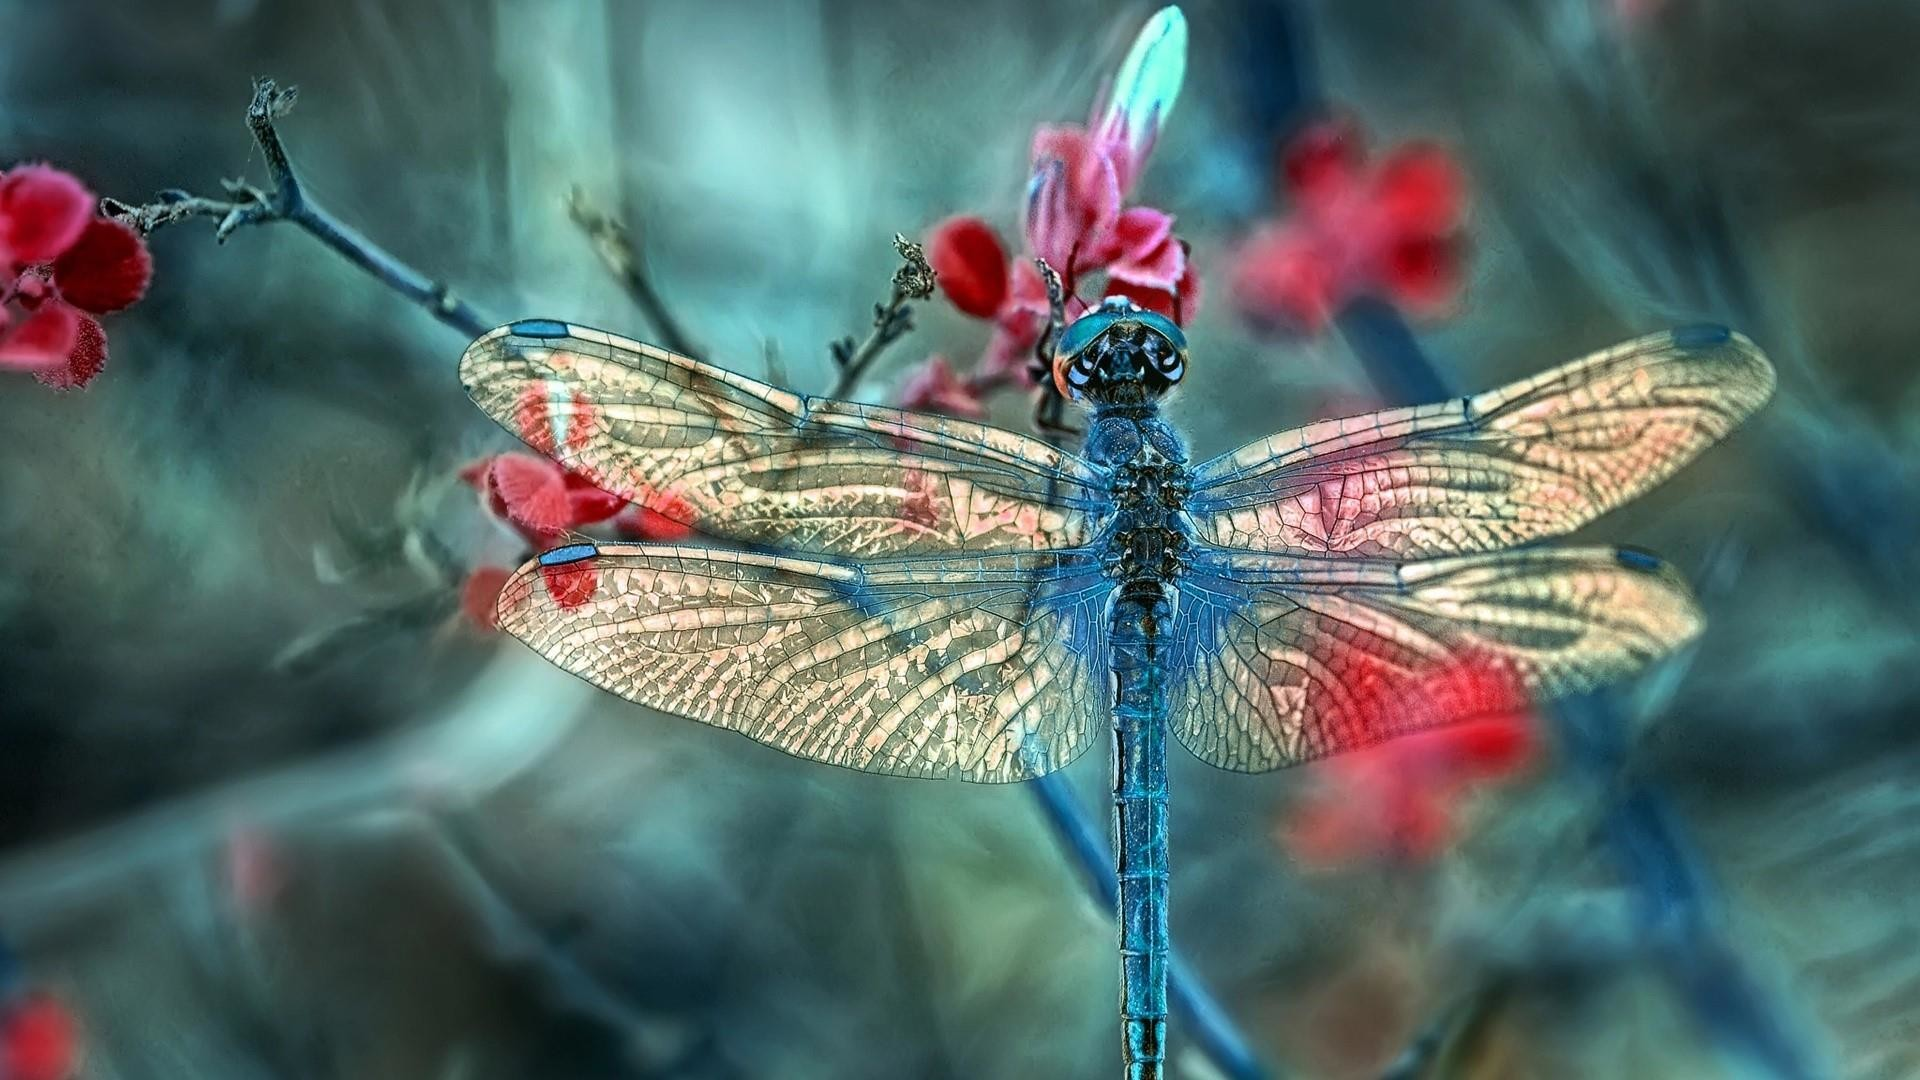 Res: 1920x1080, Dragonfly - Macro Photography Wallpaper | Wallpaper Studio 10 | Tens of  thousands HD and UltraHD wallpapers for Android, Windows and Xbox